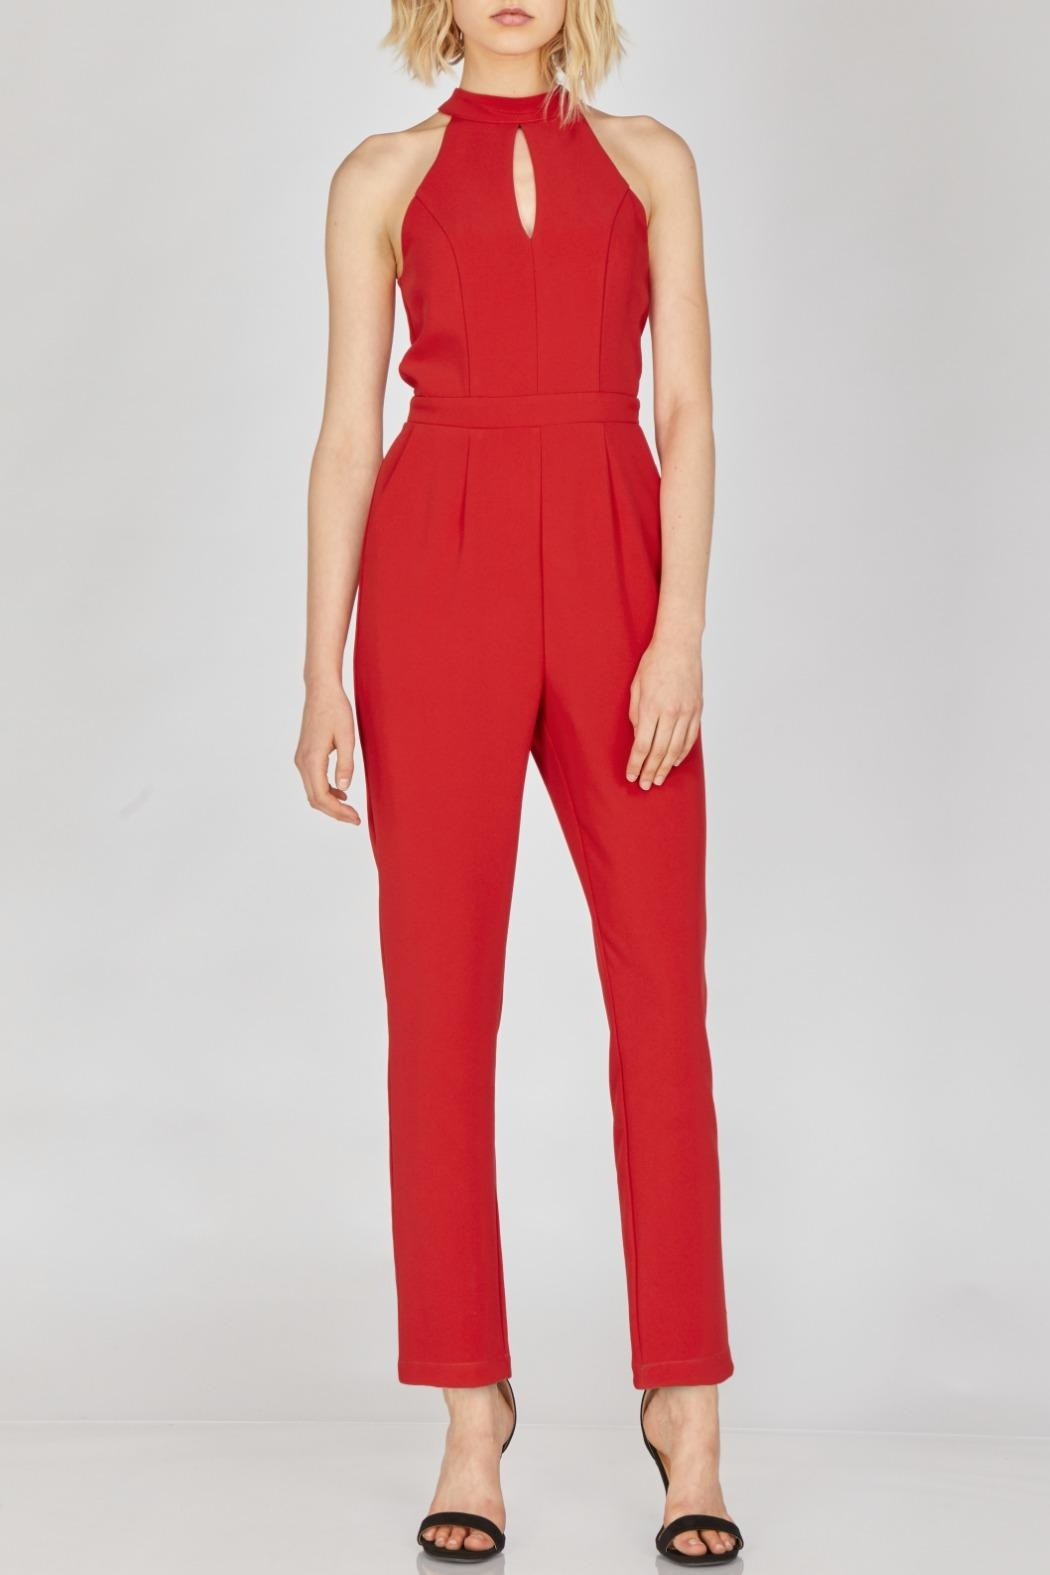 Adelyn Rae Shaylie Scallop Jumpsuit - Main Image